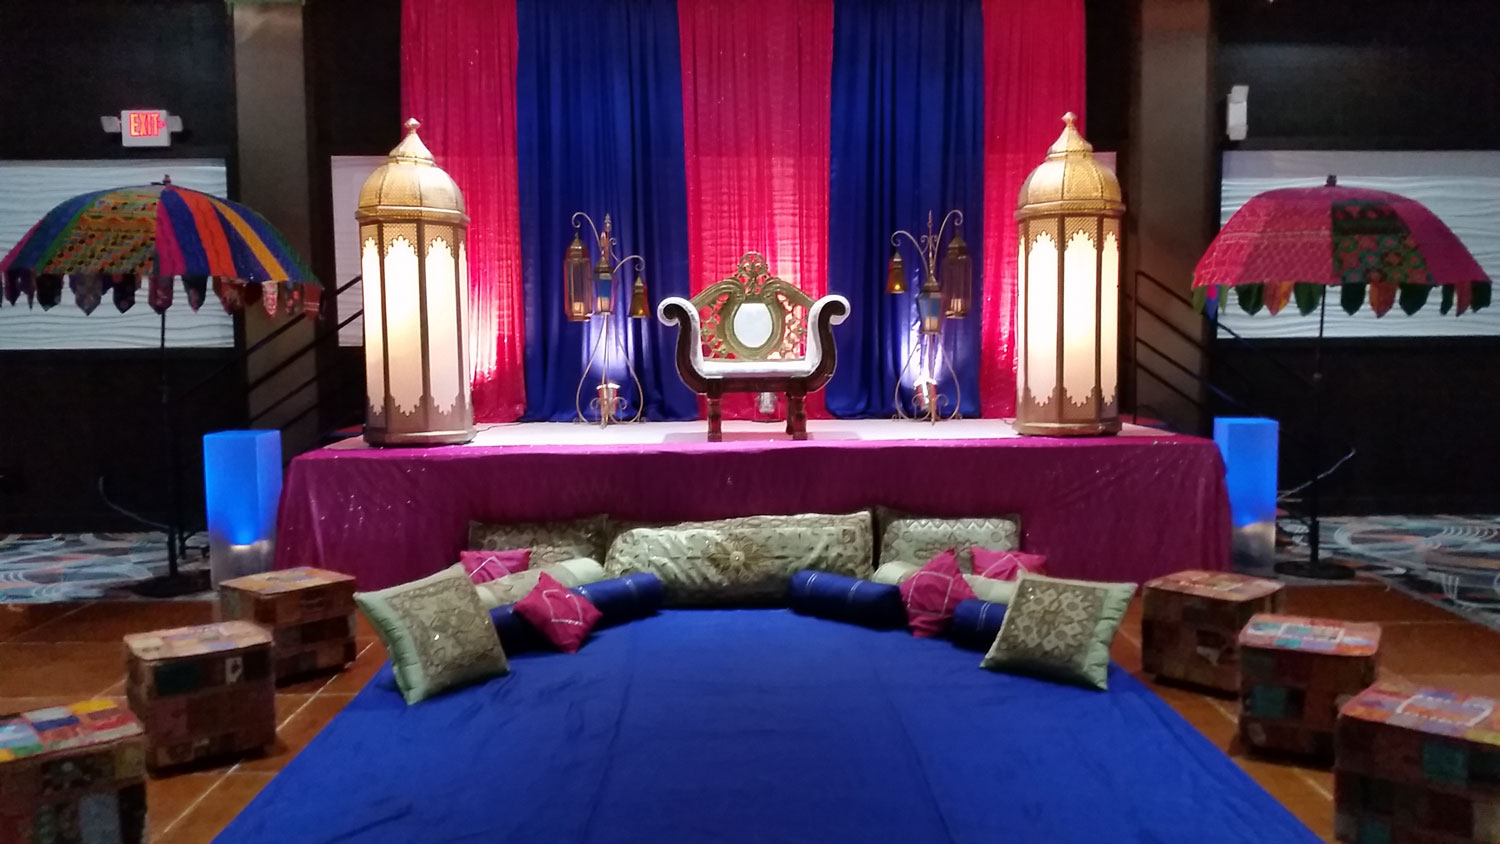 Aria Banquet Hall Indian Pre-Party decoration - choora party - mehndi party - indian wedding decor - moroccan decor - rajasthani theme decor - ladies party